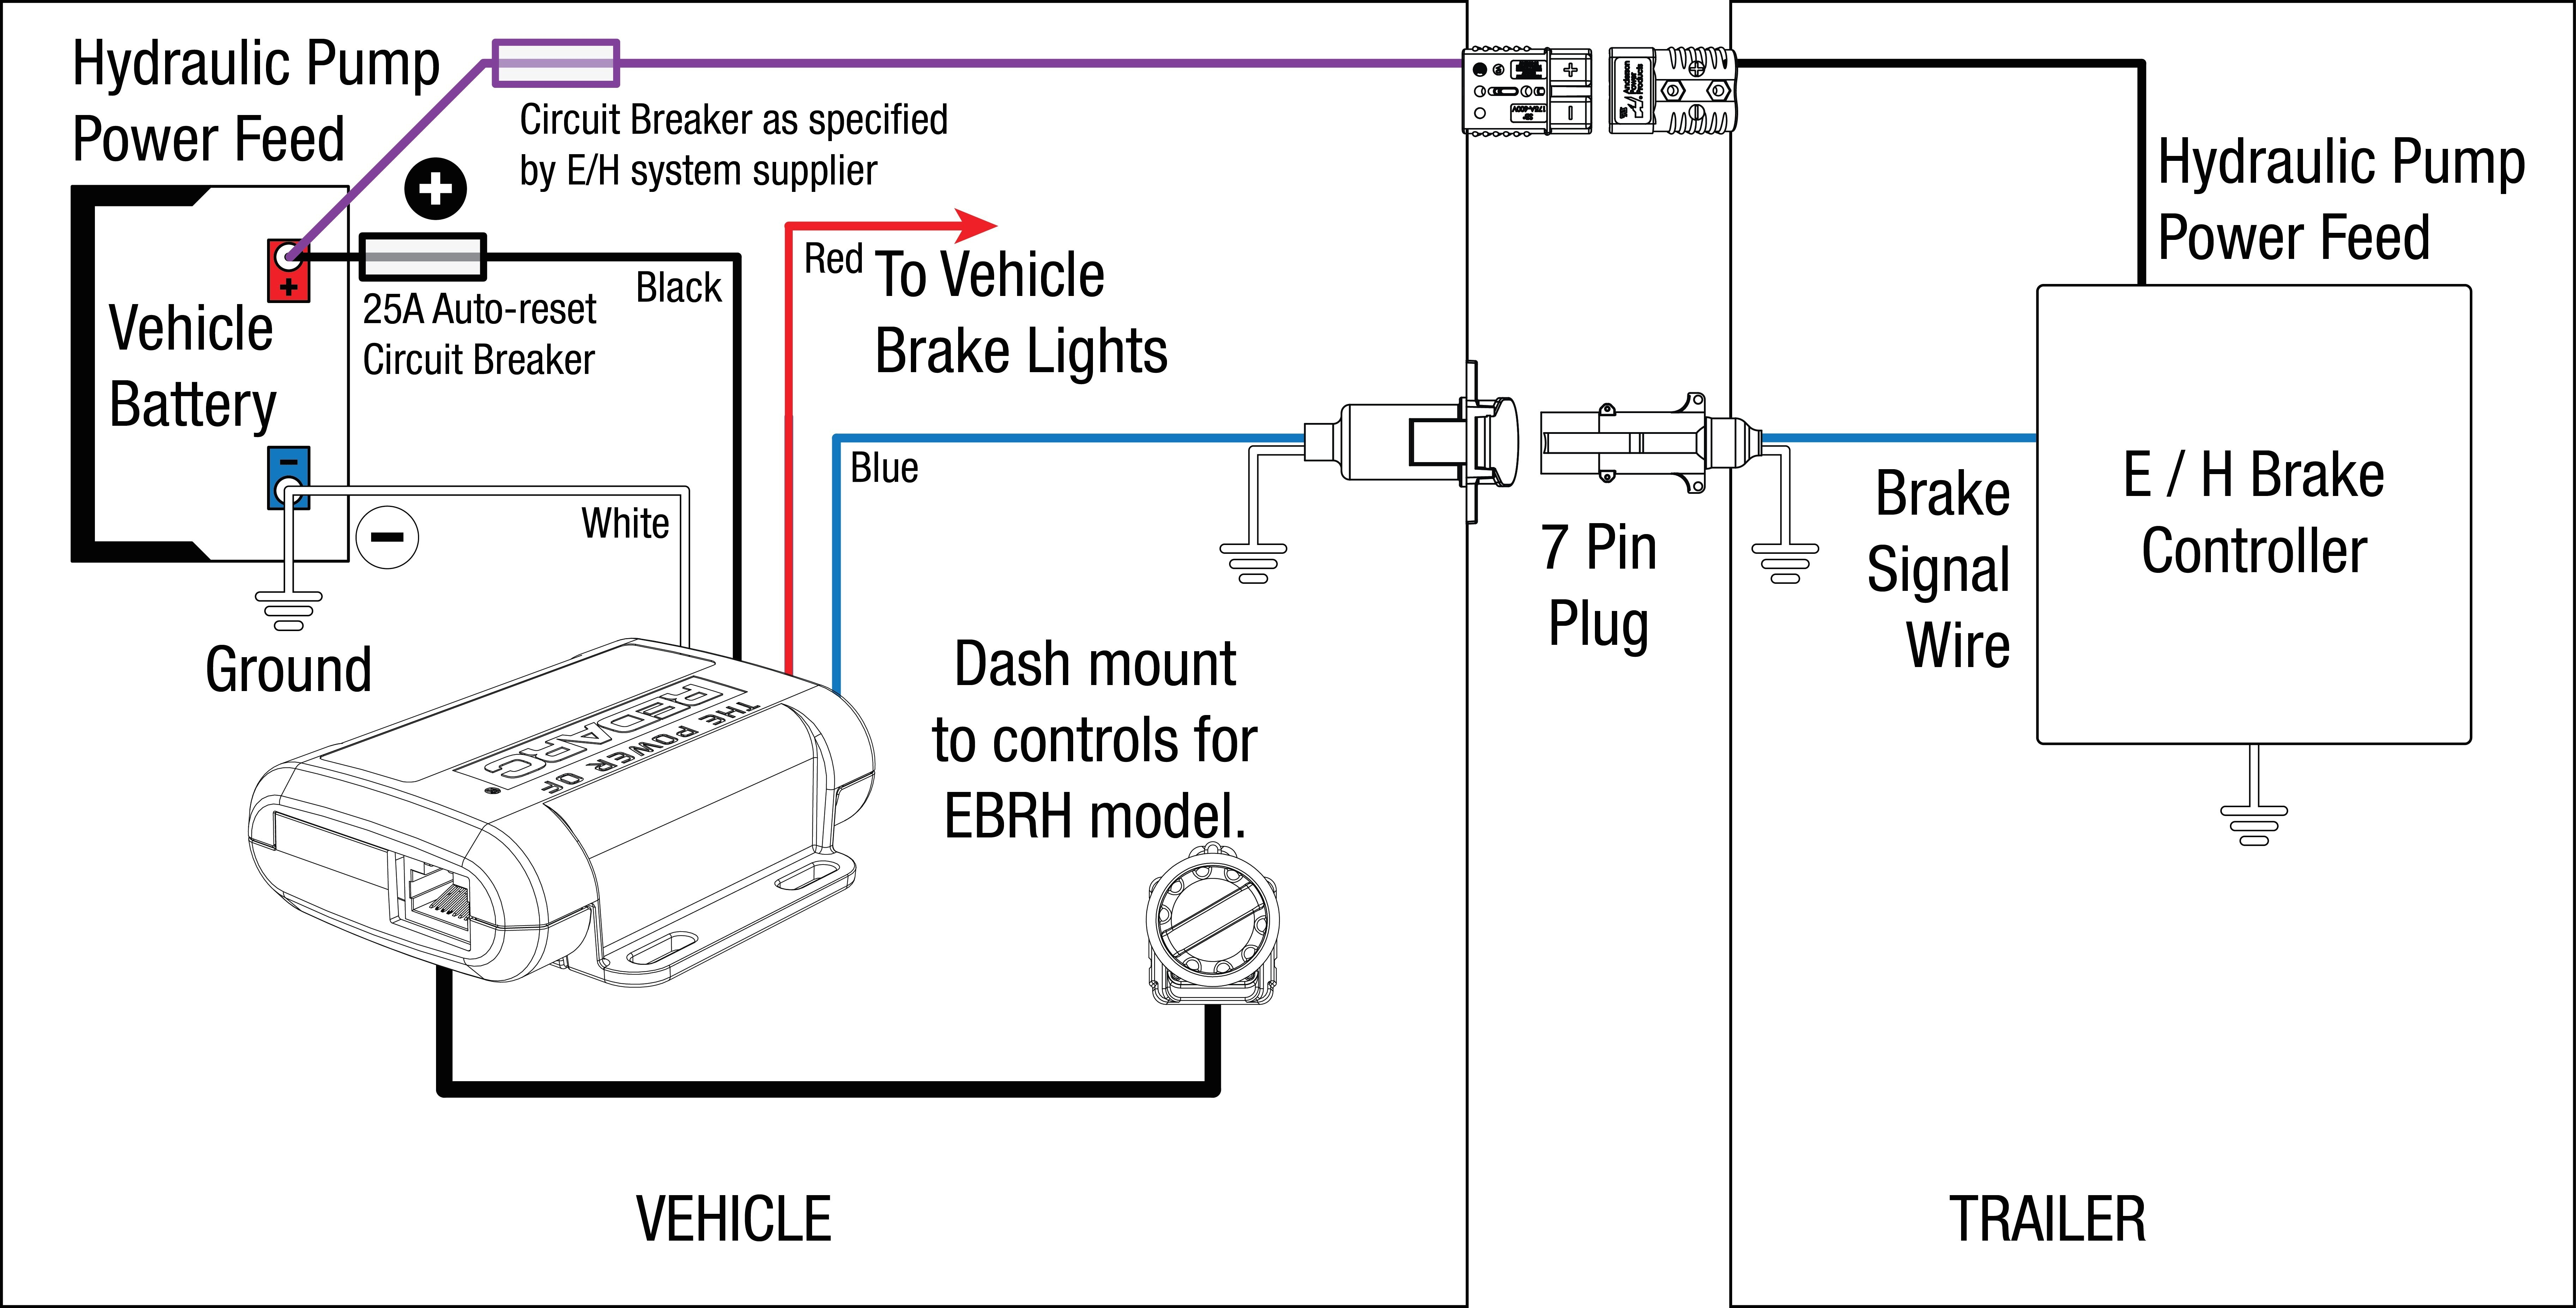 Prodigy P2 Wiring Harness - Data Wiring Diagram Today - Brake Controller Wiring Diagram